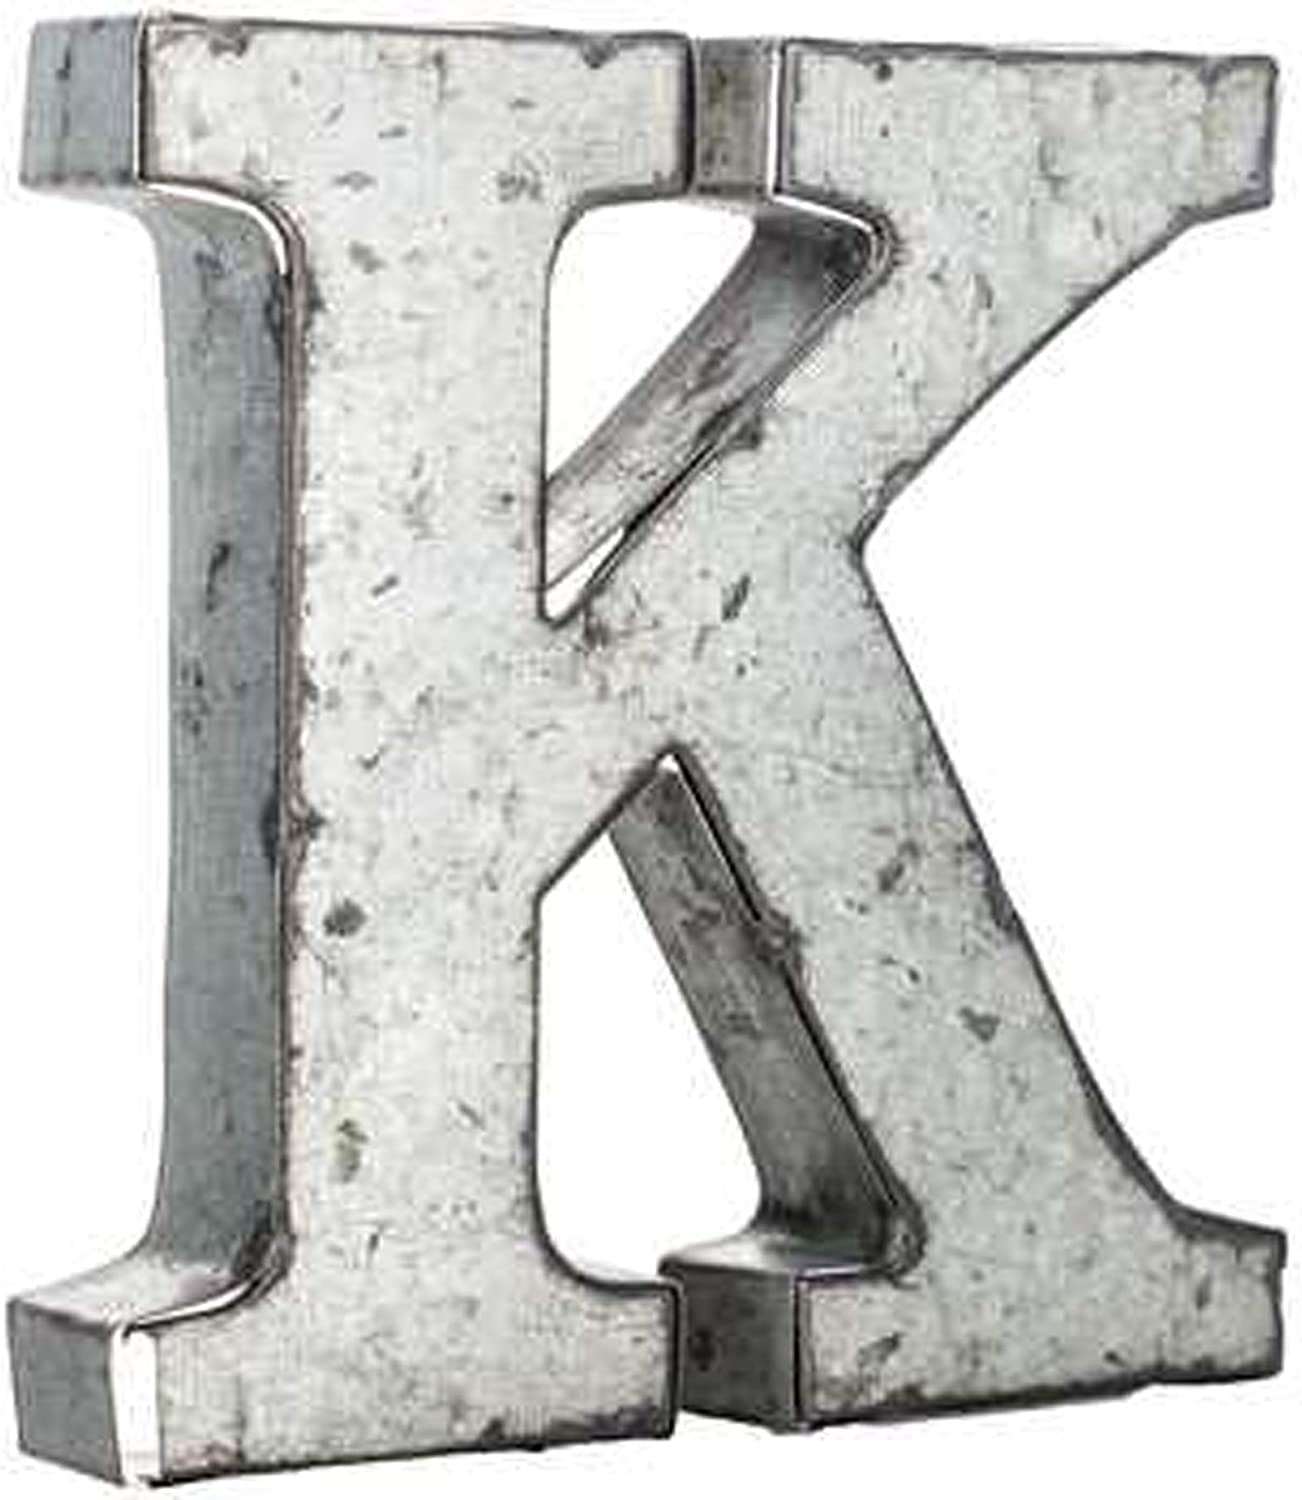 Wisechoice Decorative Alphabet Metal Wall Decor Letter K | Perfect for Home Display -Silver, 3.75 Inch L x 3.75 Inch W